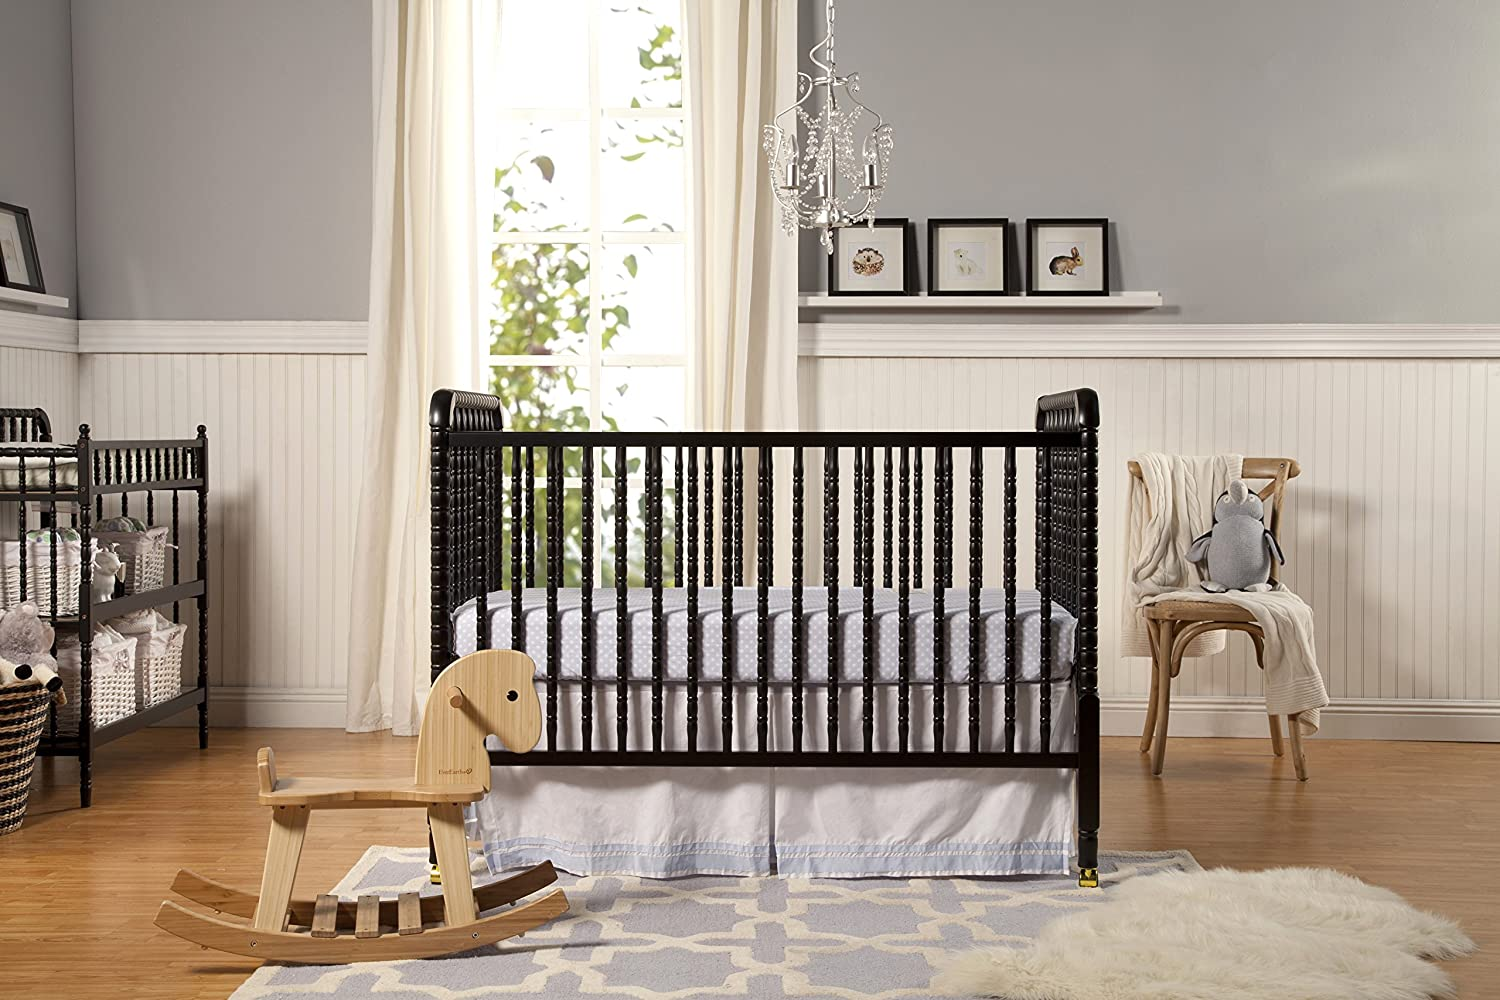 on our gender cribs crib favorite project is lind sale one nursery of jenny neutral